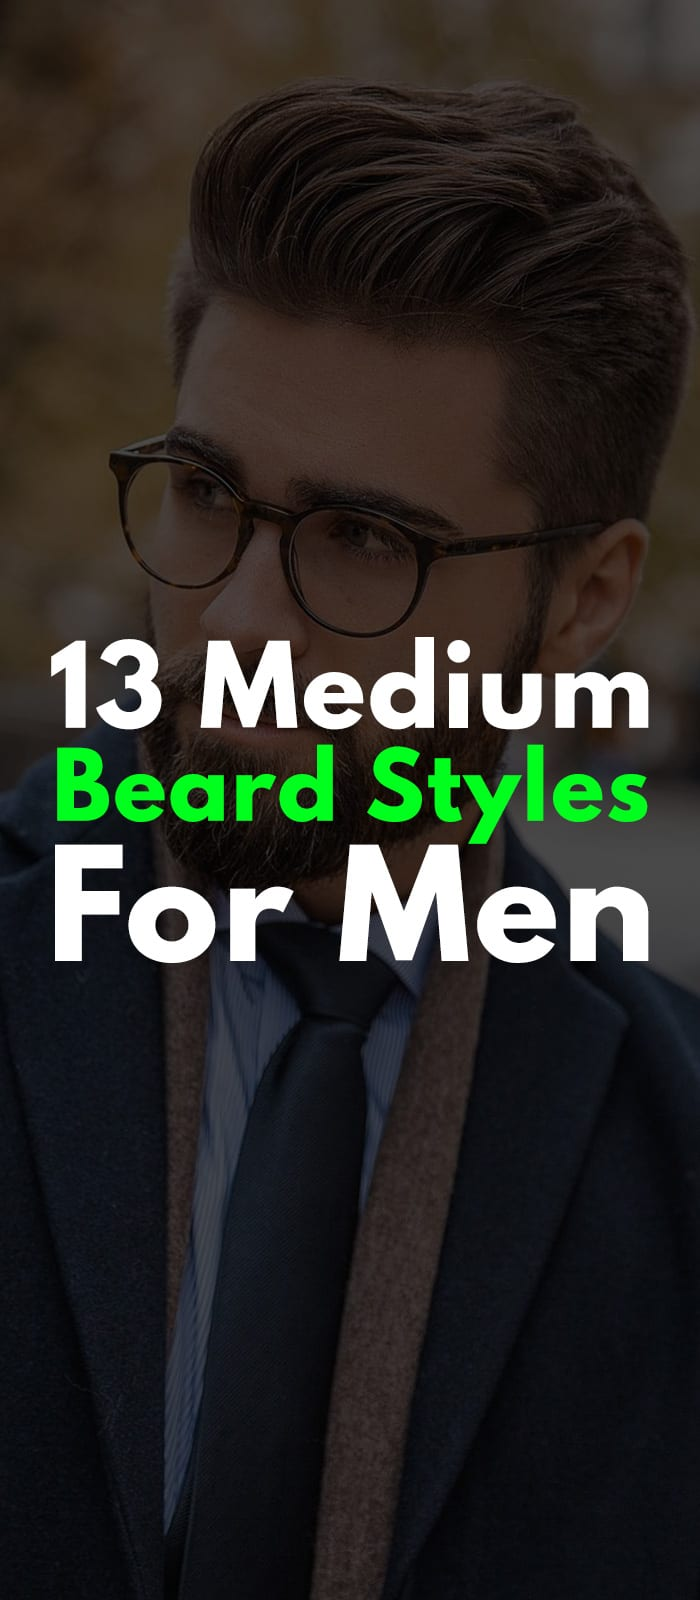 13 Medium Beard Styles For Men Of All Ages & face Shapes